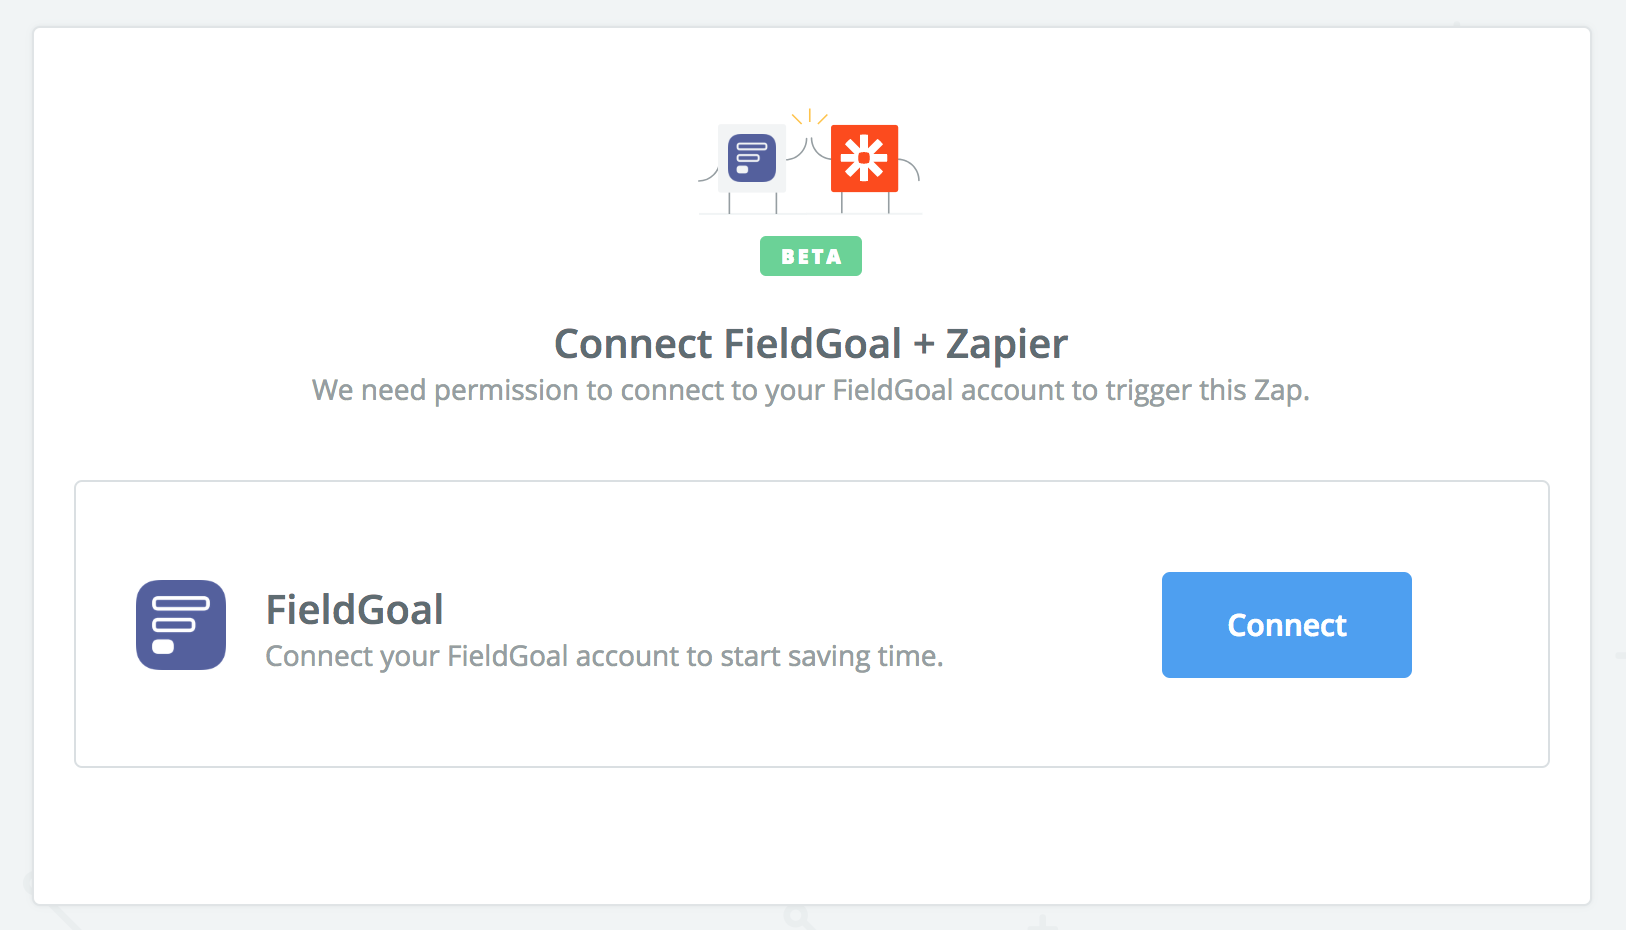 Click to connect FieldGoal